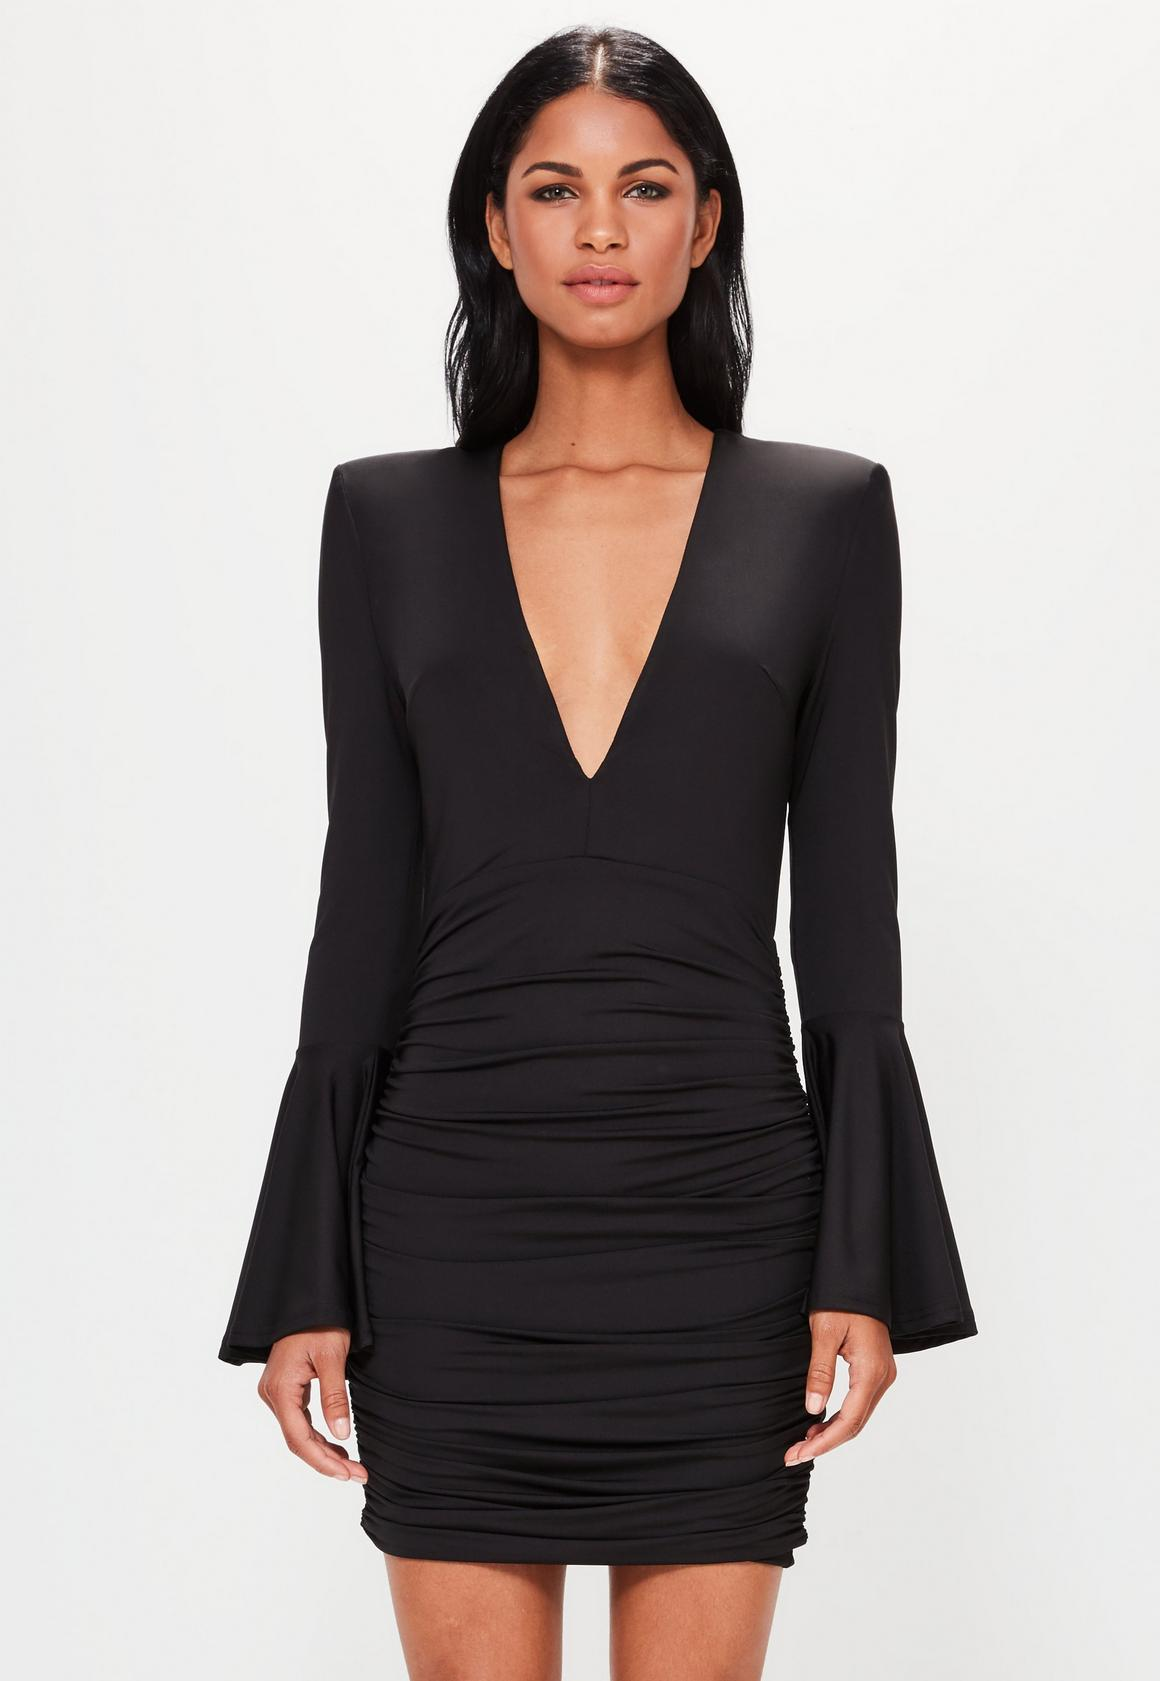 Black dress next - Peace Love Black Plunge Bell Sleeve Bodycon Dress 152 00 Previous Next